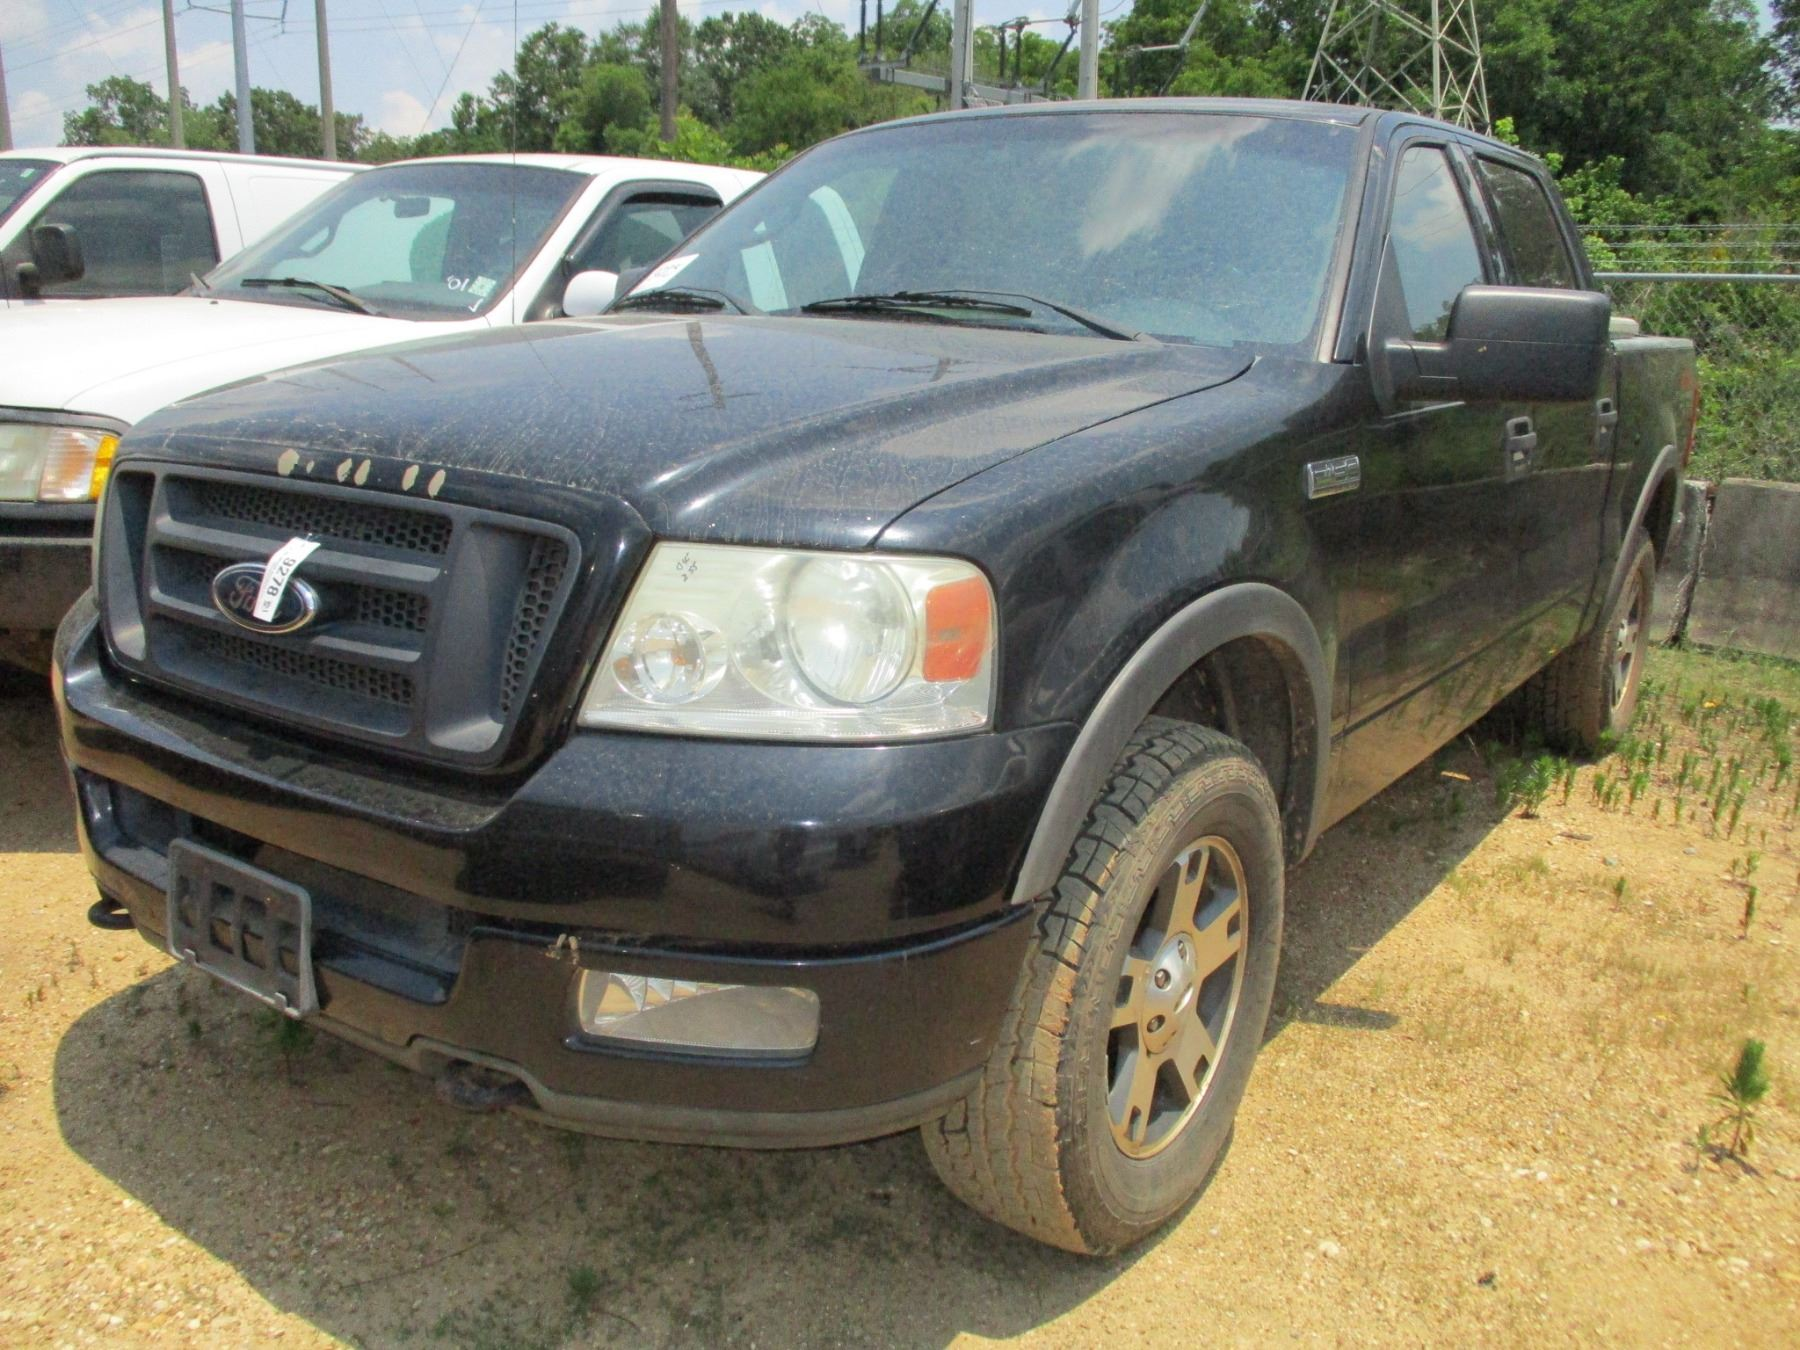 hight resolution of image 1 2004 ford f150 fx4 pick up vin sn 1ftpw14594kc30932